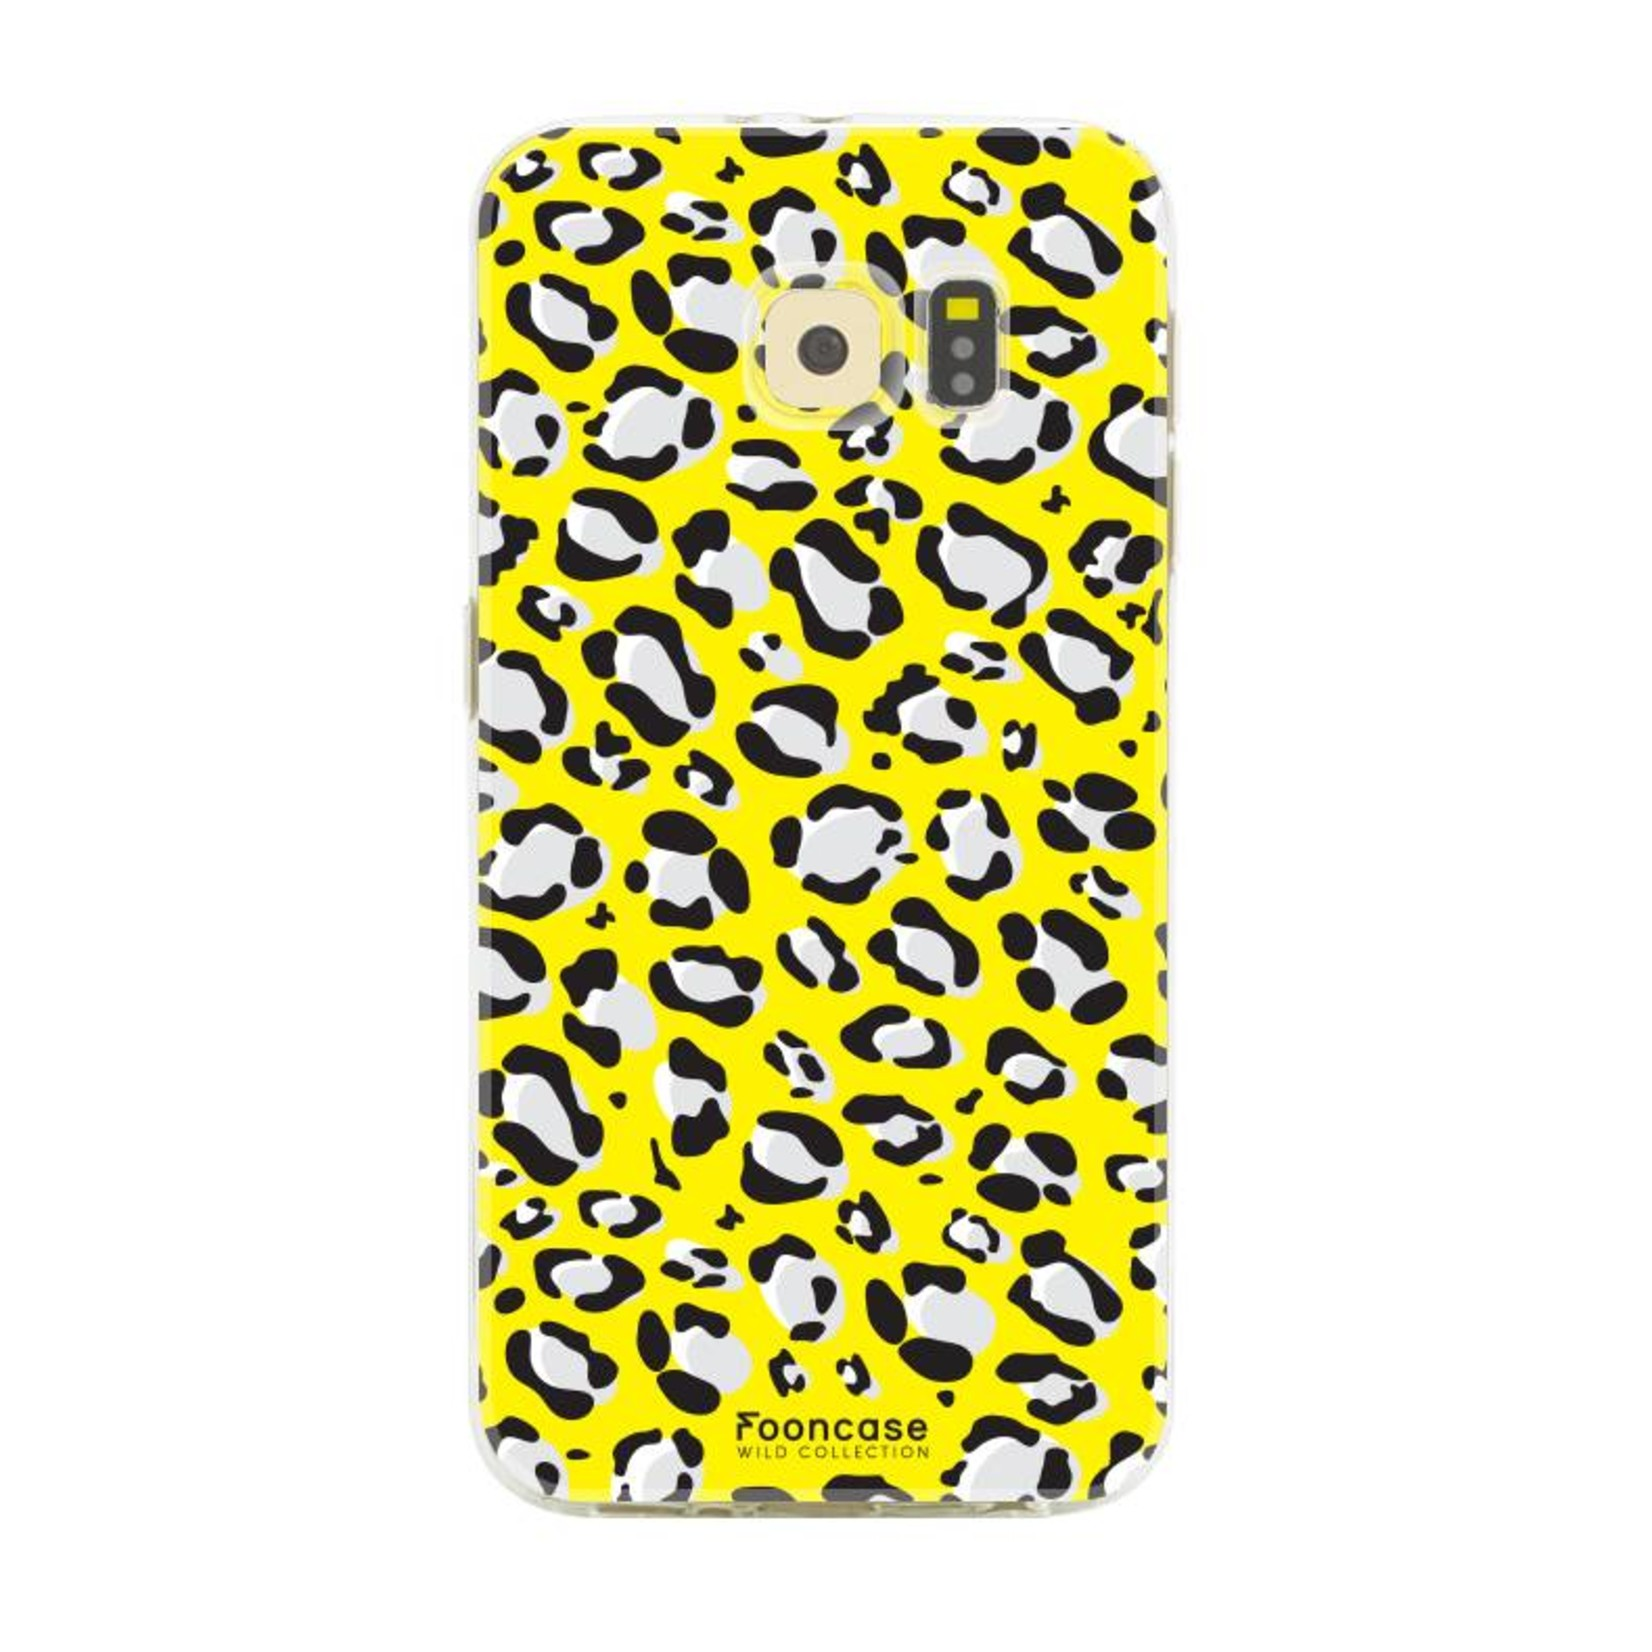 FOONCASE Samsung Galaxy S6 hoesje TPU Soft Case - Back Cover - WILD COLLECTION / Luipaard / Leopard print / Geel